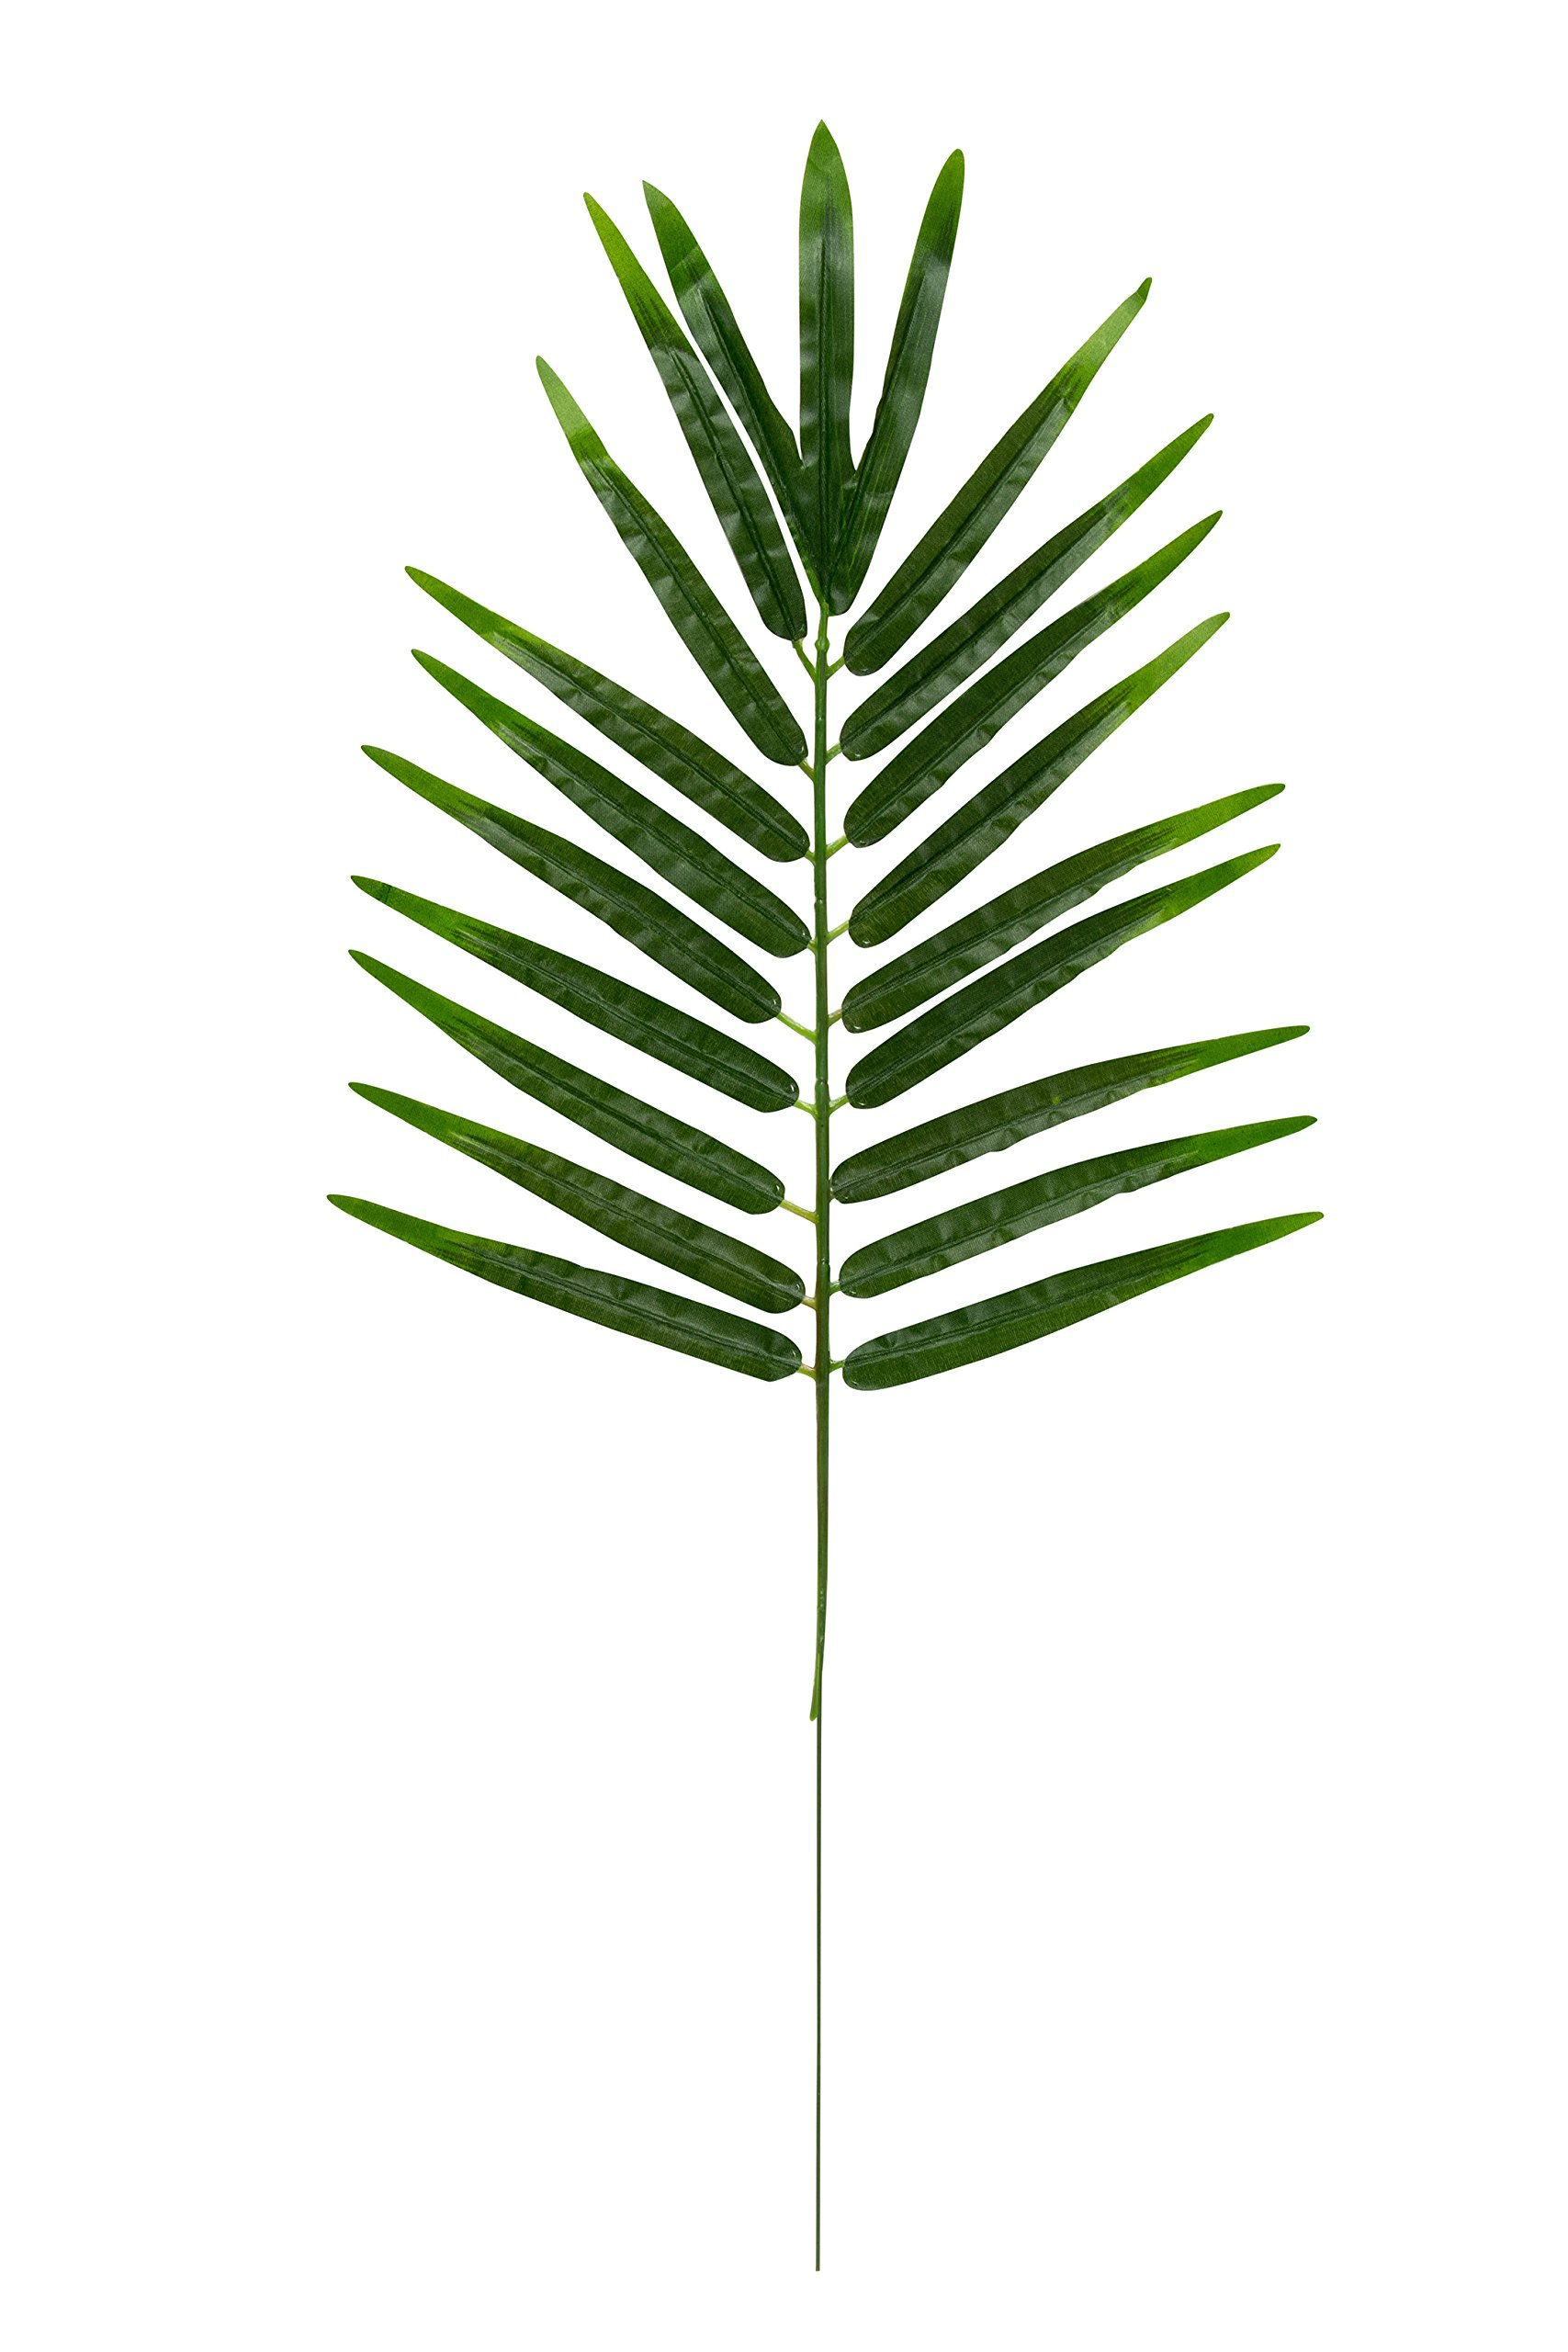 Blue-Panda-Faux-Fern-Leaves-12-Pack-Fake-Tropical-Leaves-Artificial-Palm-Leaves-Hawaiian-Luau-Party-Pool-Party-Decorations-Green-21-x-102-inches